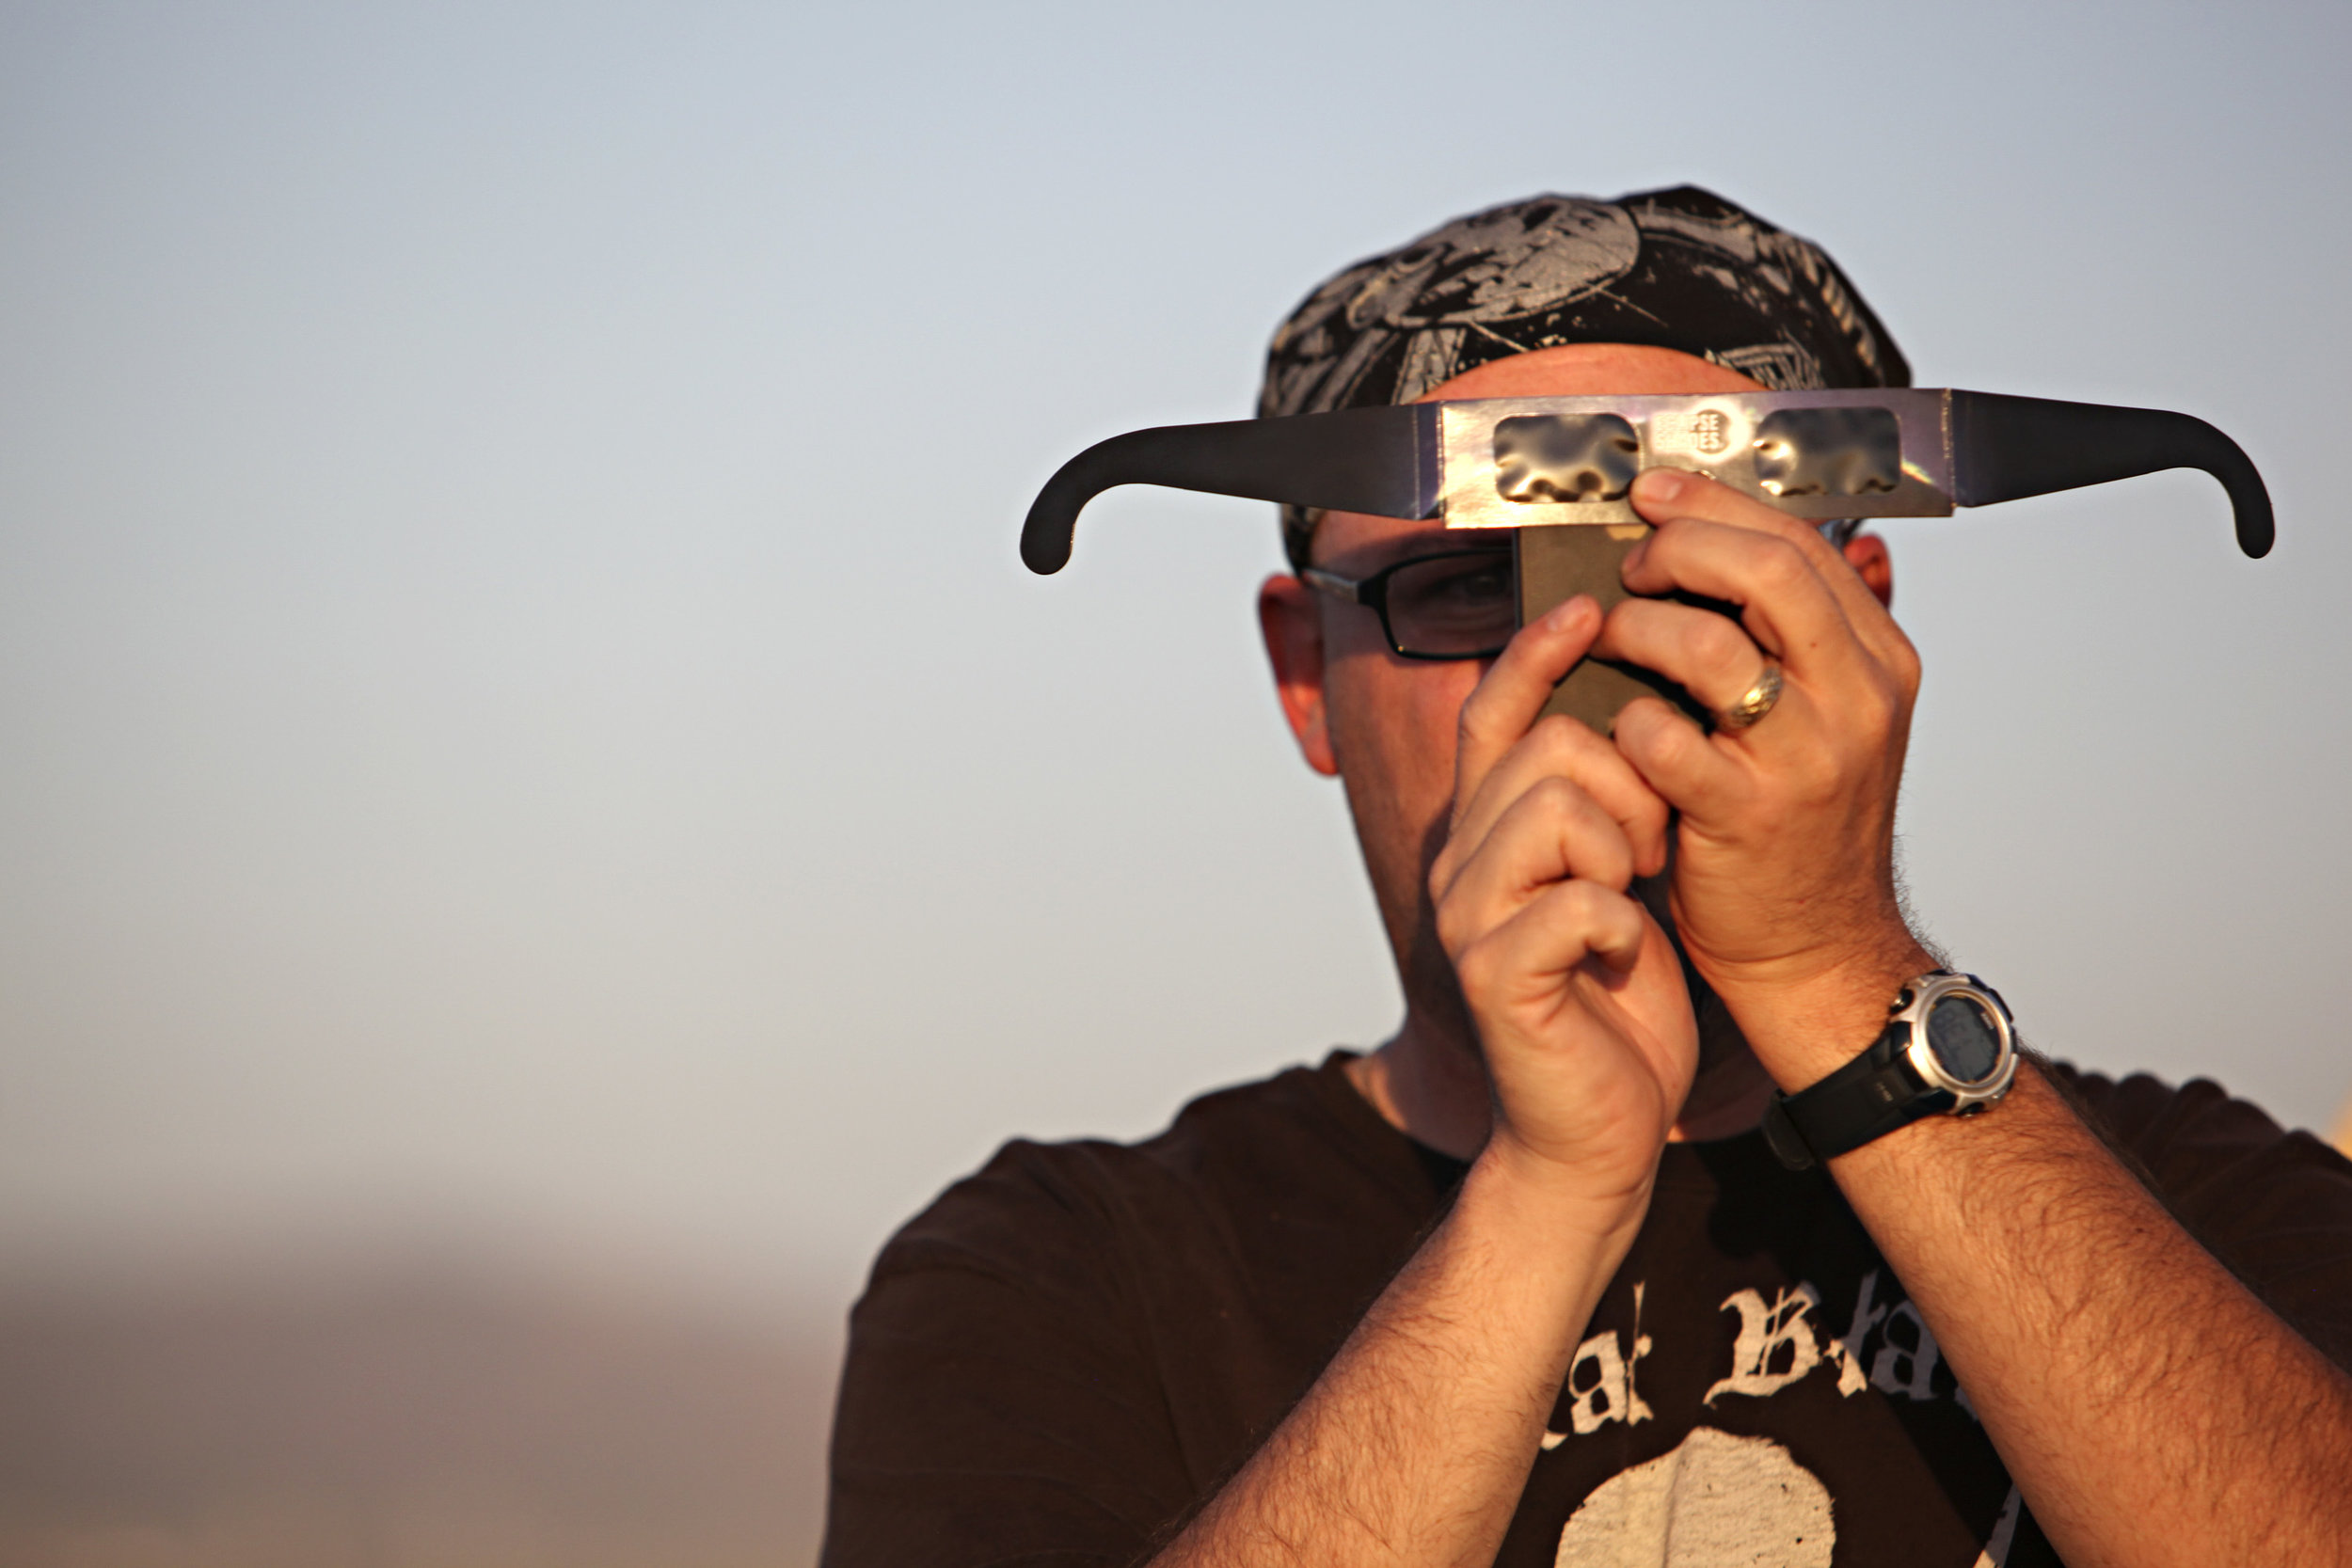 John Converse, of Albuquerque, takes a cell phone photo of the annular solar eclipse through the lens of a pair of solar glasses during the eclipse viewing party near the Hard Rock Casino Presents the Pavilion, Sunday, May 20, 2012, in Albuquerque, NM. (Morgan Petroski/Albuquerque Journal)